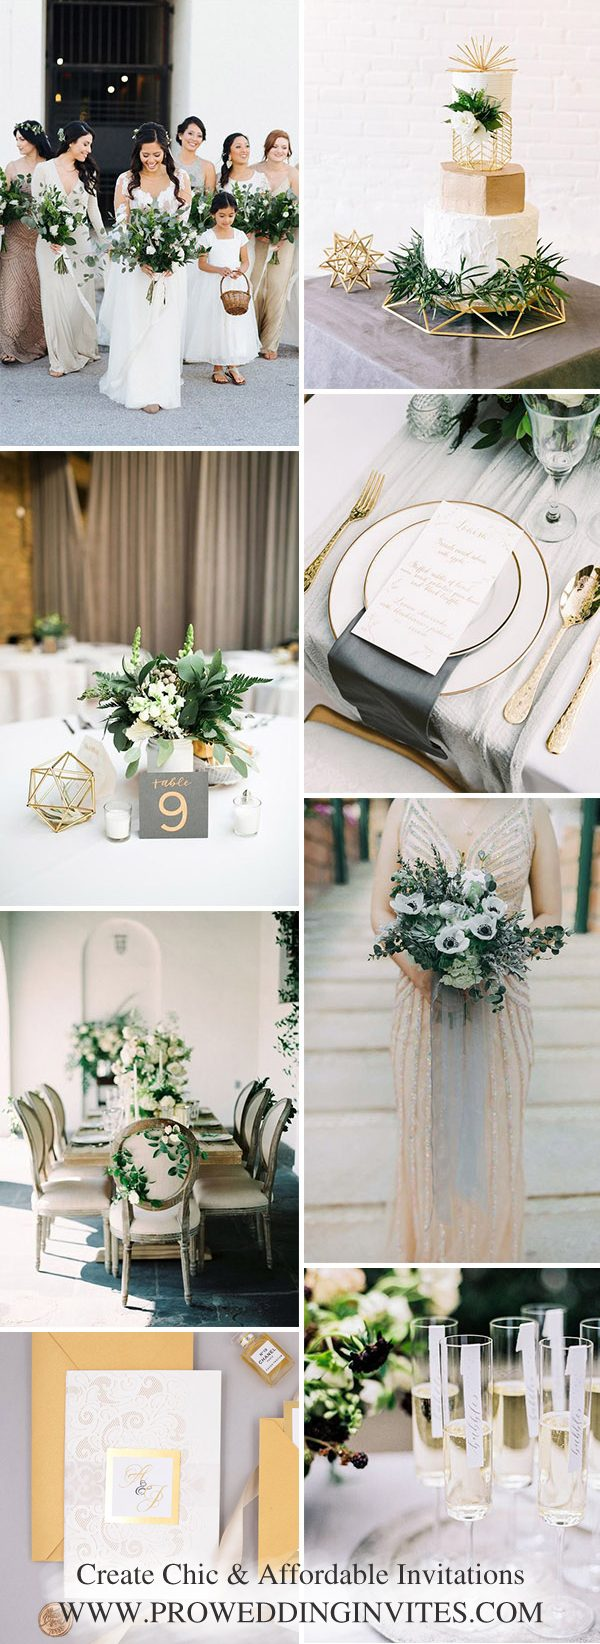 The Best Gold Wedding Colors Combos for 2021: Gold + White